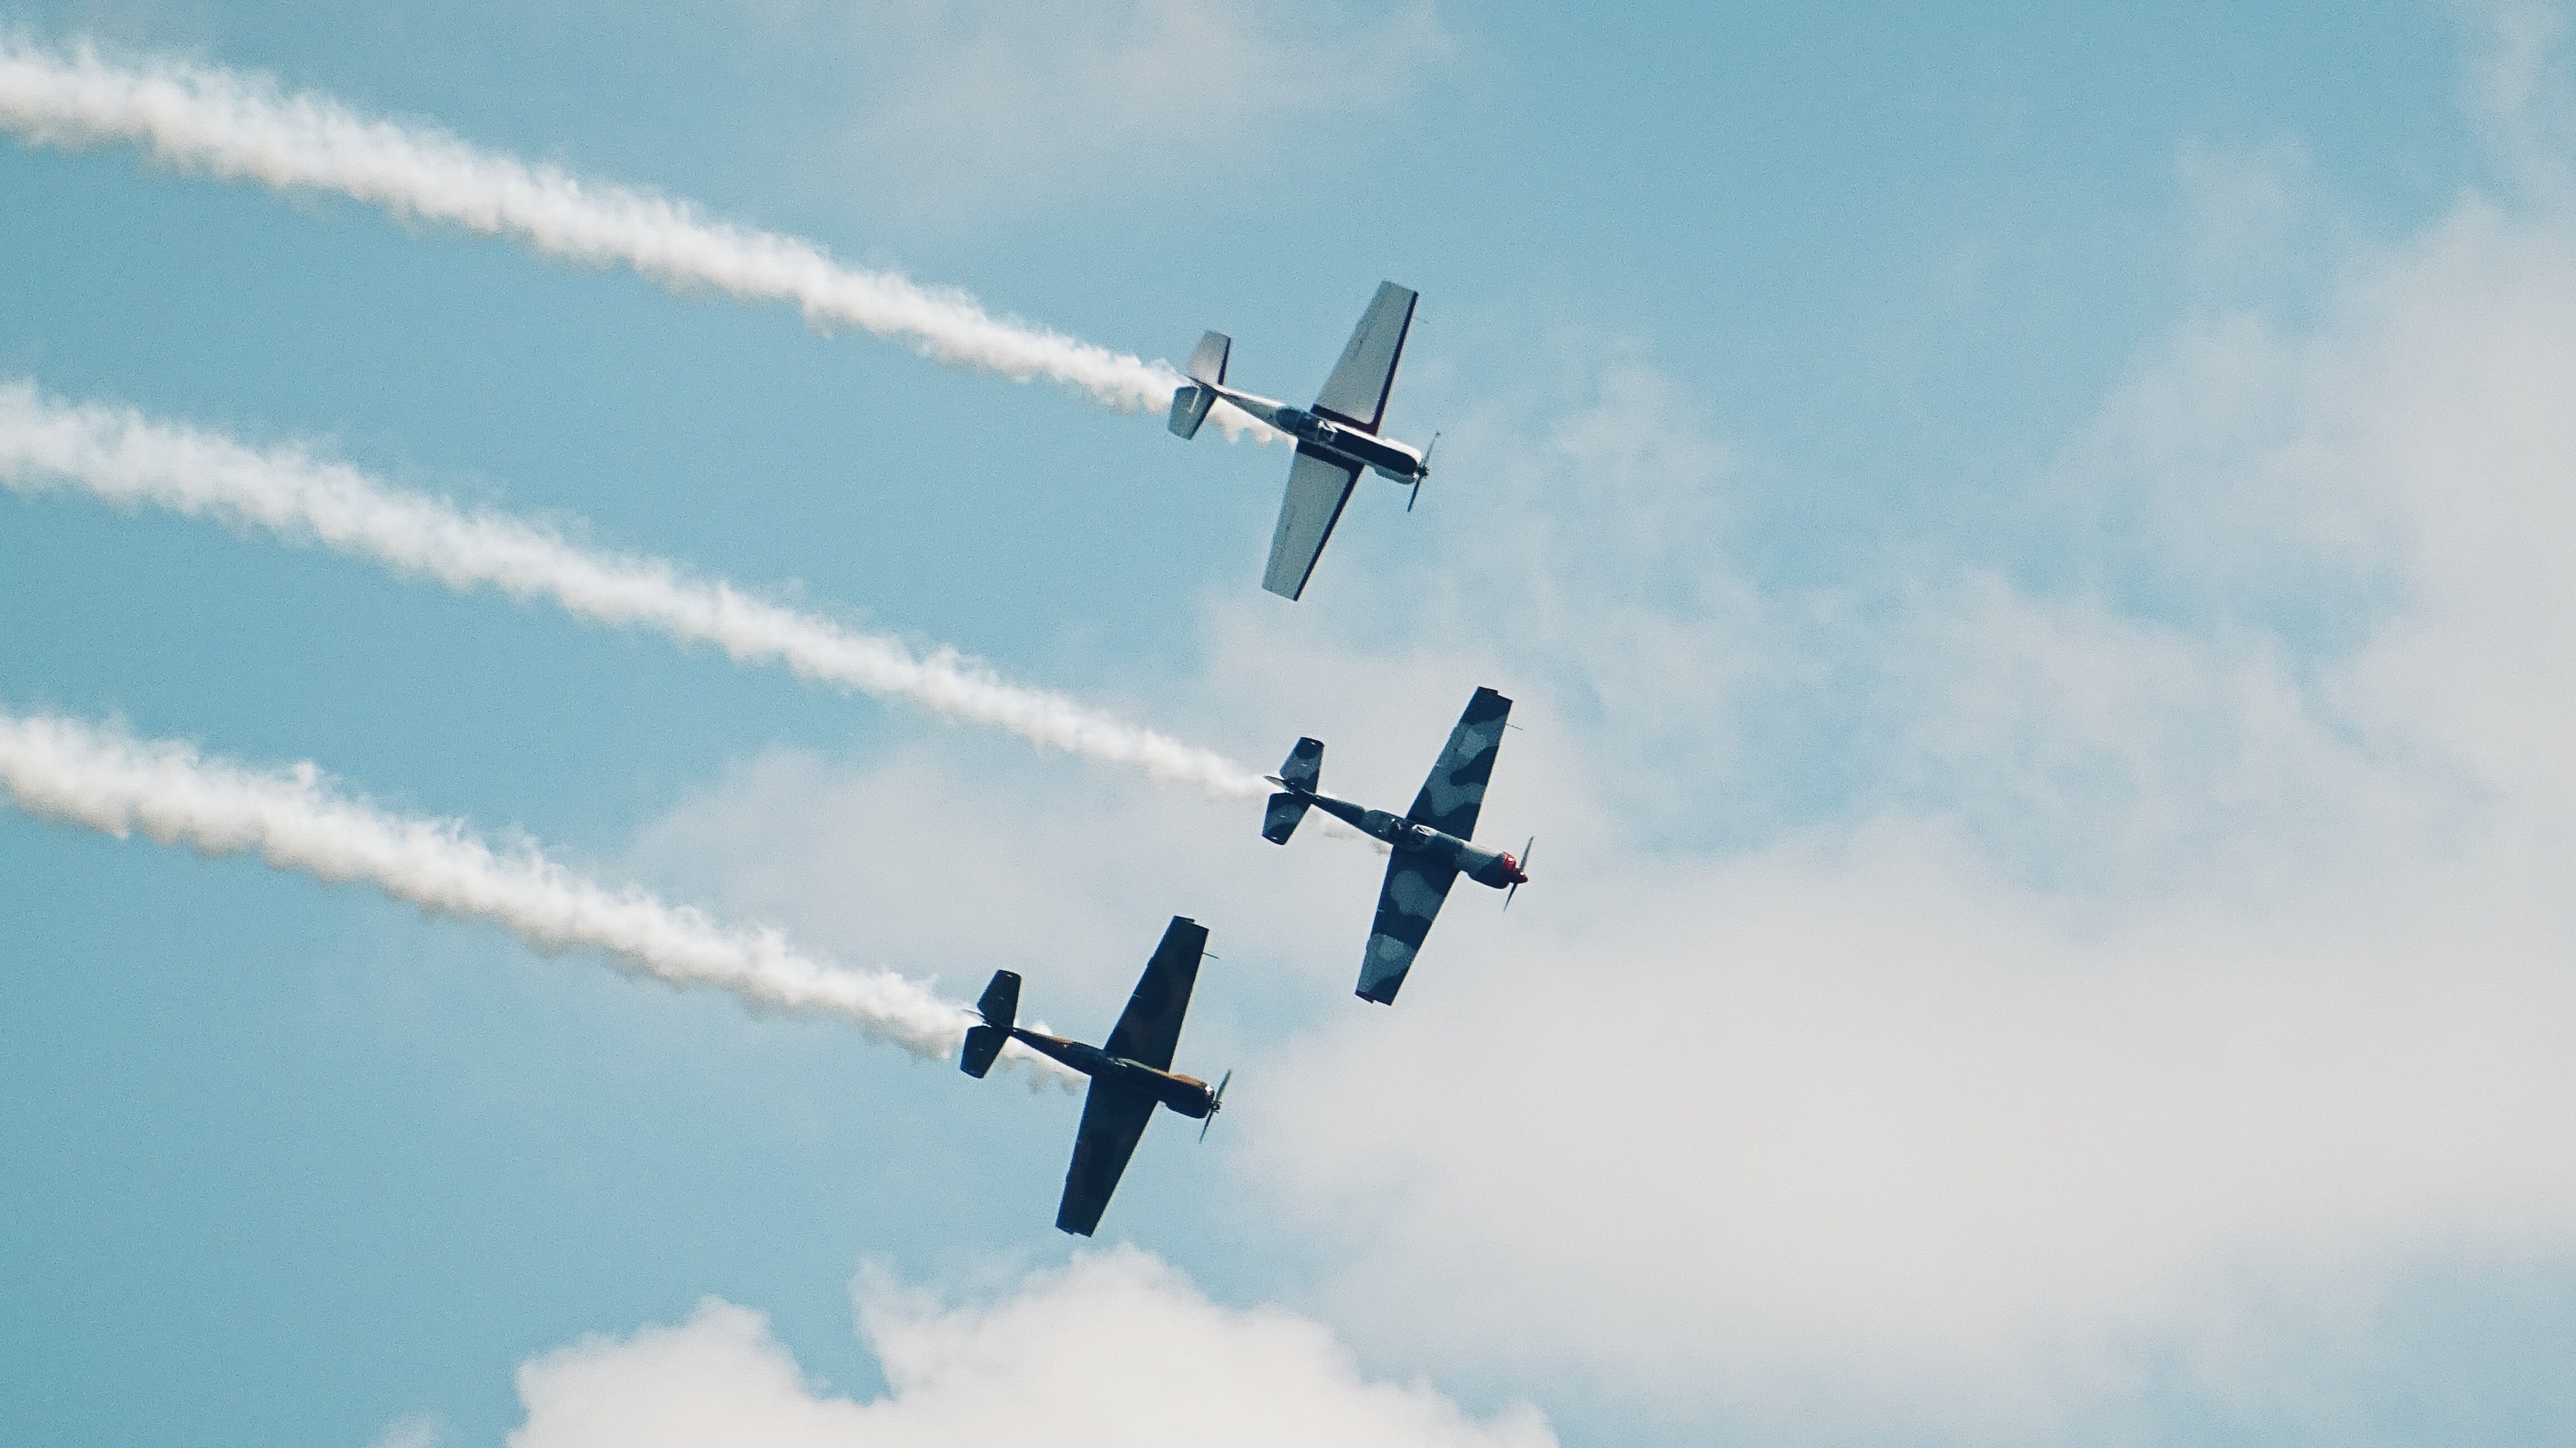 Ground perspective of three vintage planes flying in formation, with smoke trails emitting from the rear.